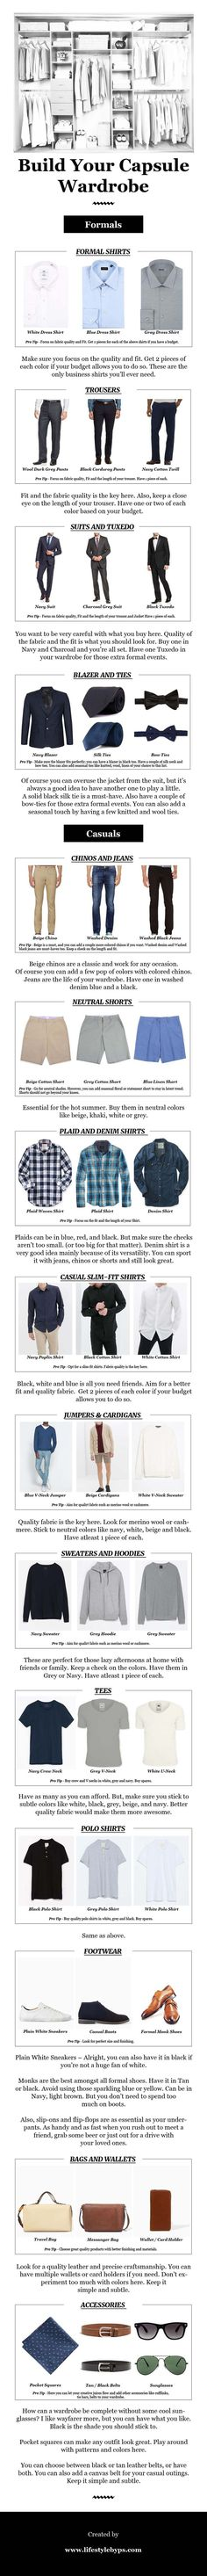 Build Your Capsule Wardrobe from the ground up. Infographic: